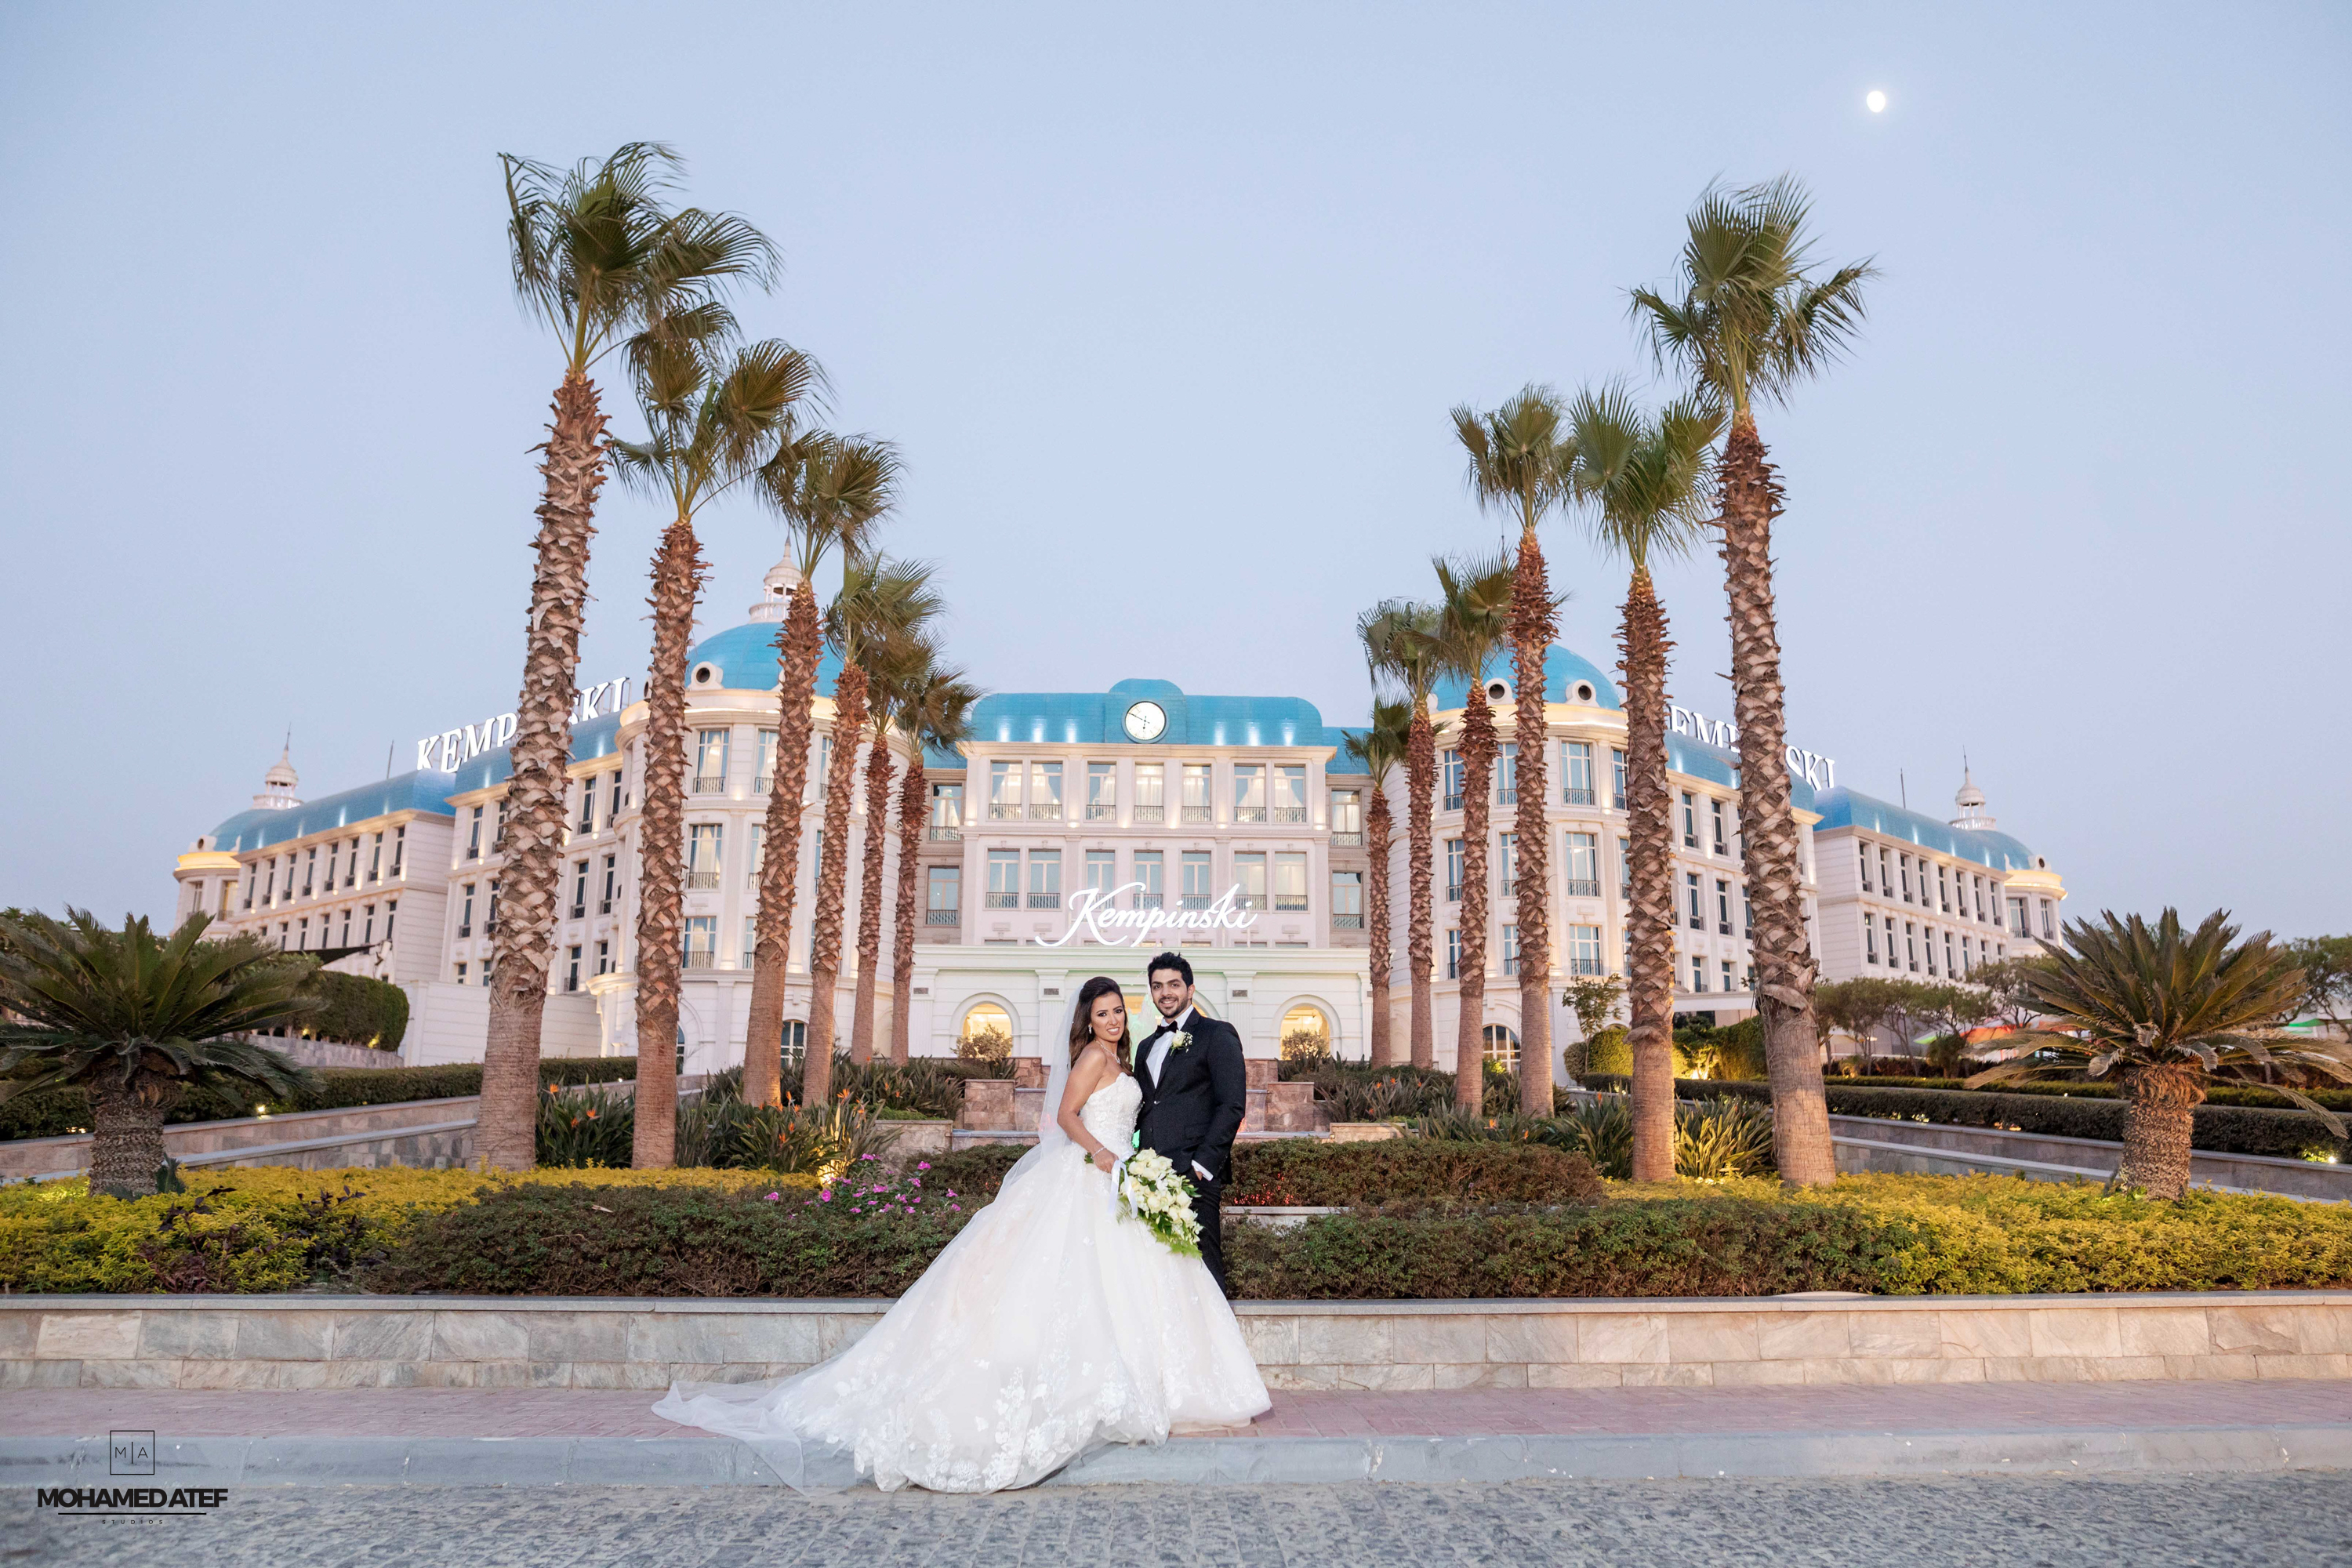 SAMIRA & AHMED WEDDING BY ATEF